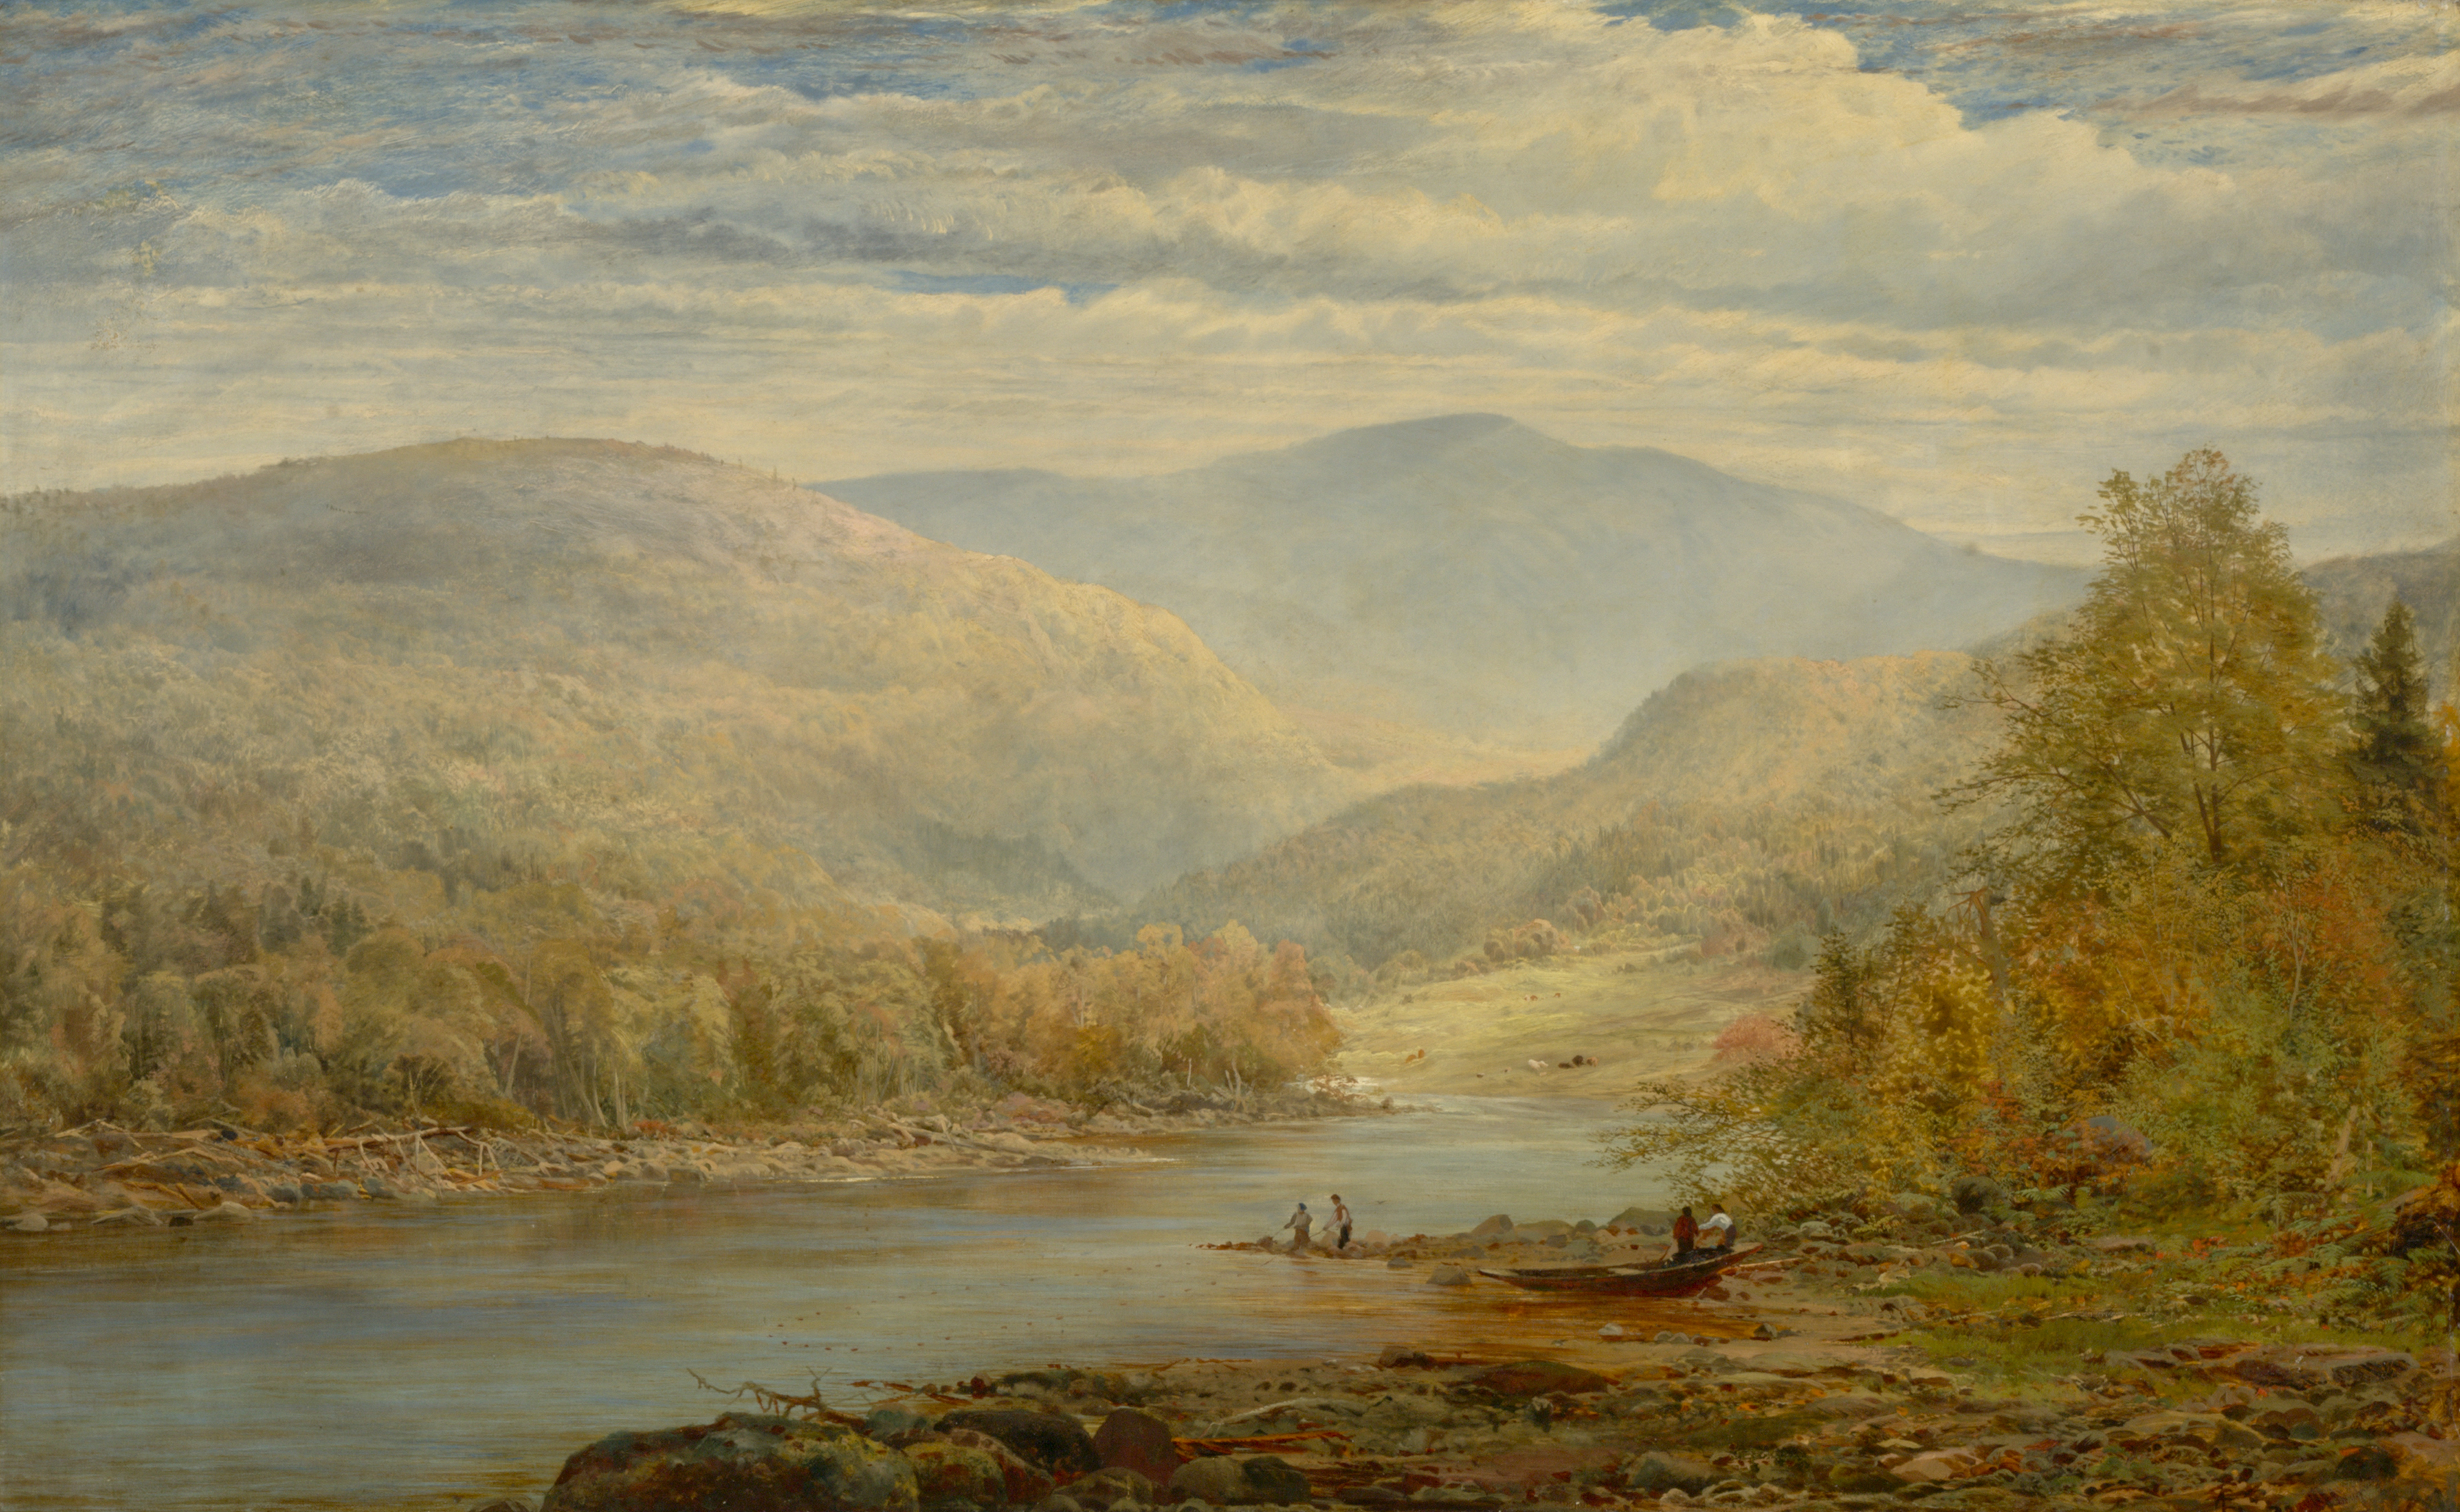 In the foreground, a peaceful river is bordered by trees in autumn colours. Four figures in groups of two appear on the right bank. In the background, mountains with rounded peaks fill the horizon beneath a cloudy sky.